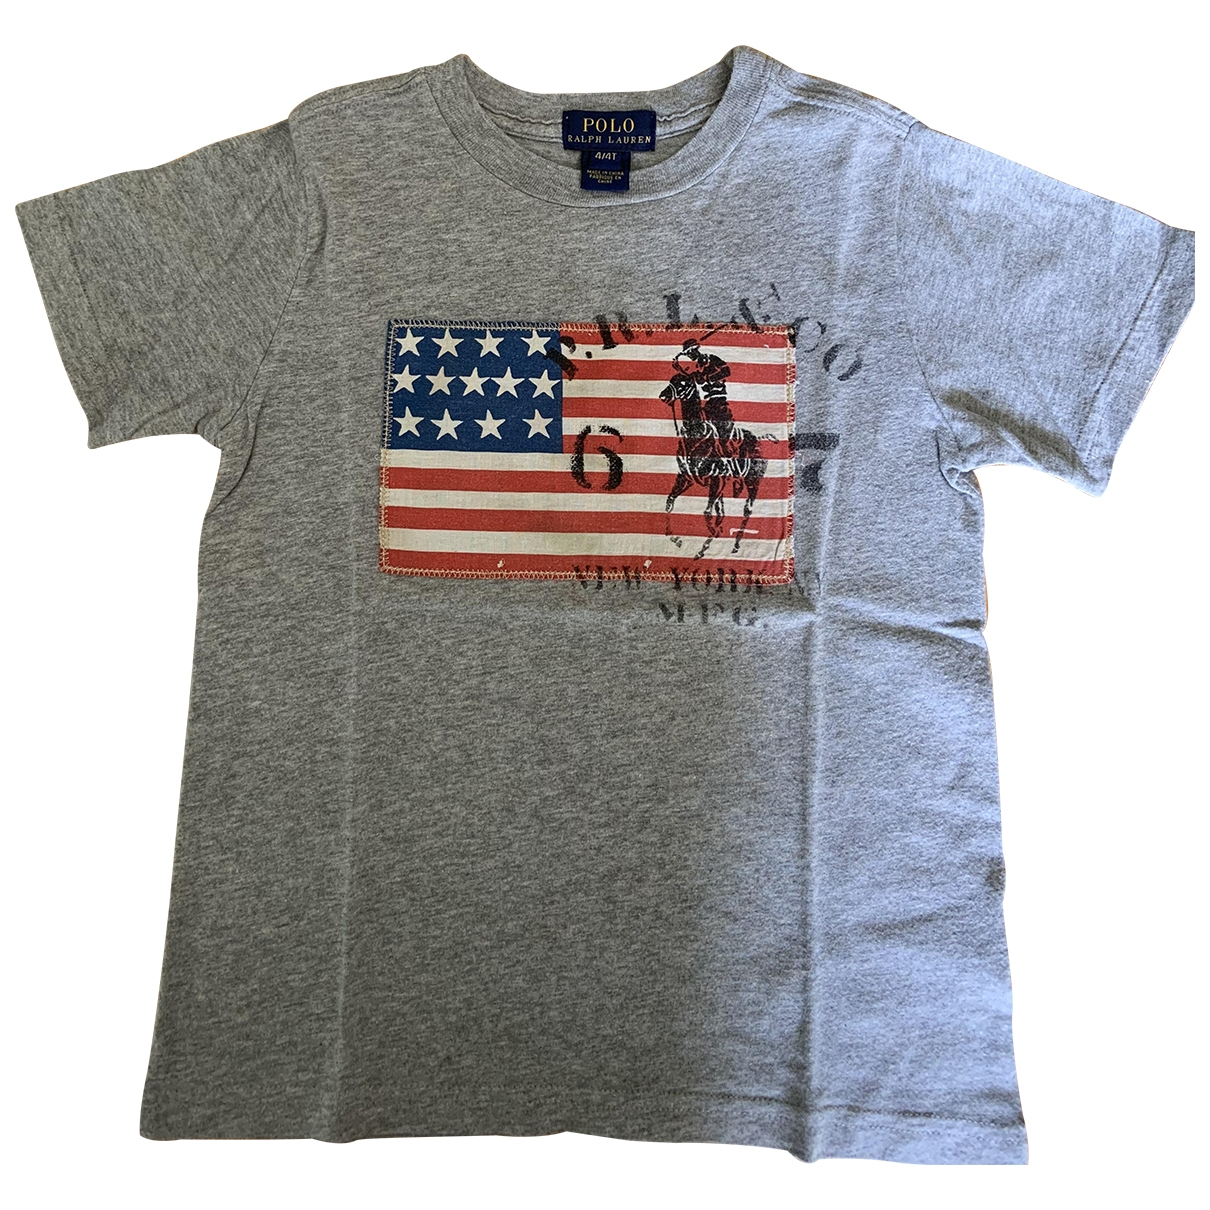 Polo Ralph Lauren \N Grey Cotton  top for Kids 4 years - up to 102cm FR